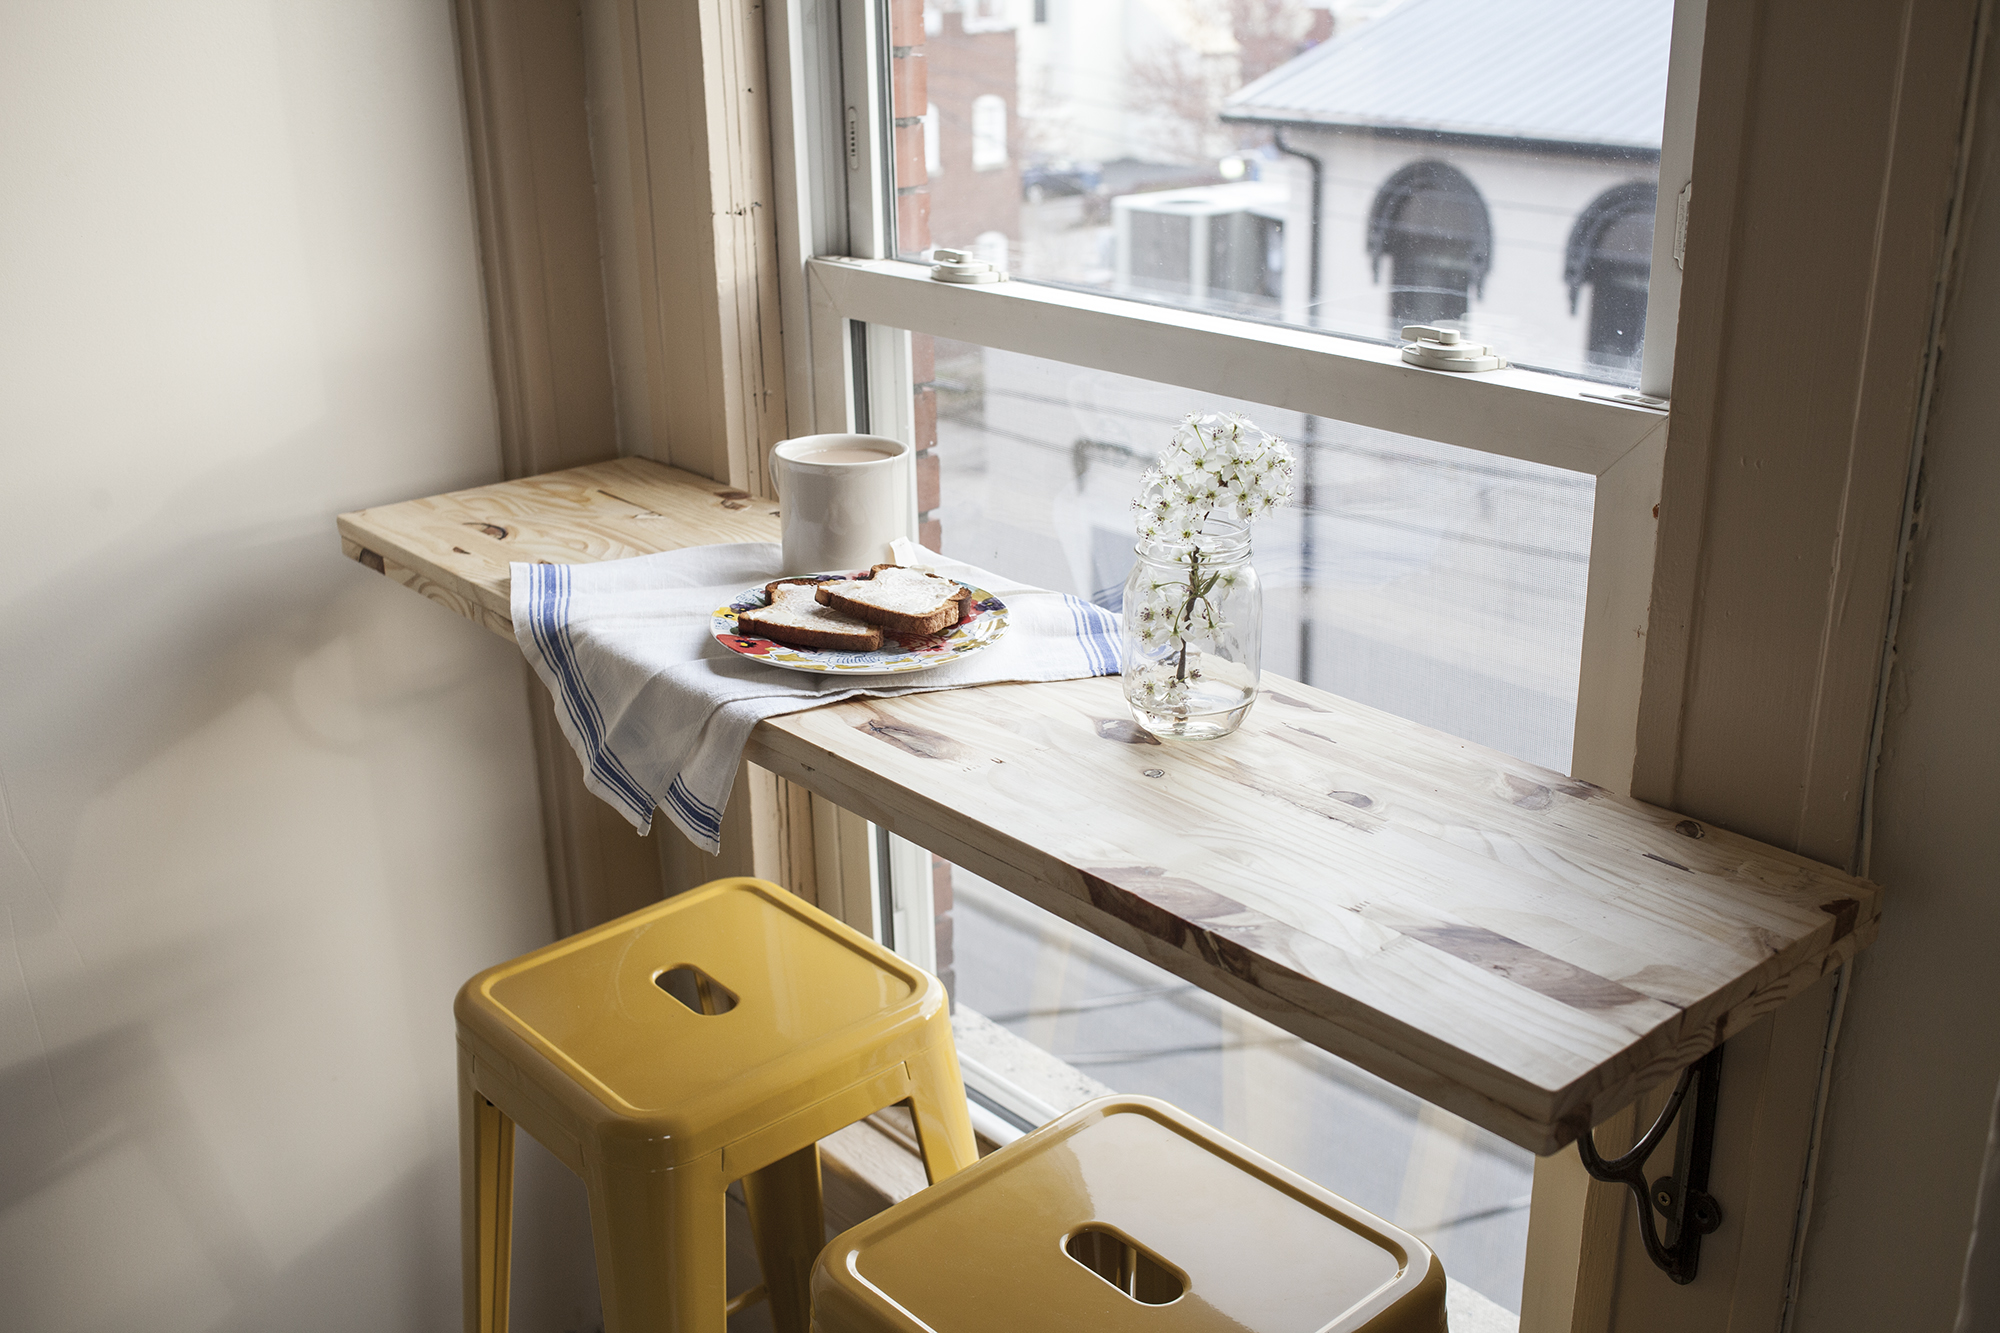 awesome life hack of the week 13 hacks to make your tiny apartment seem big and organized